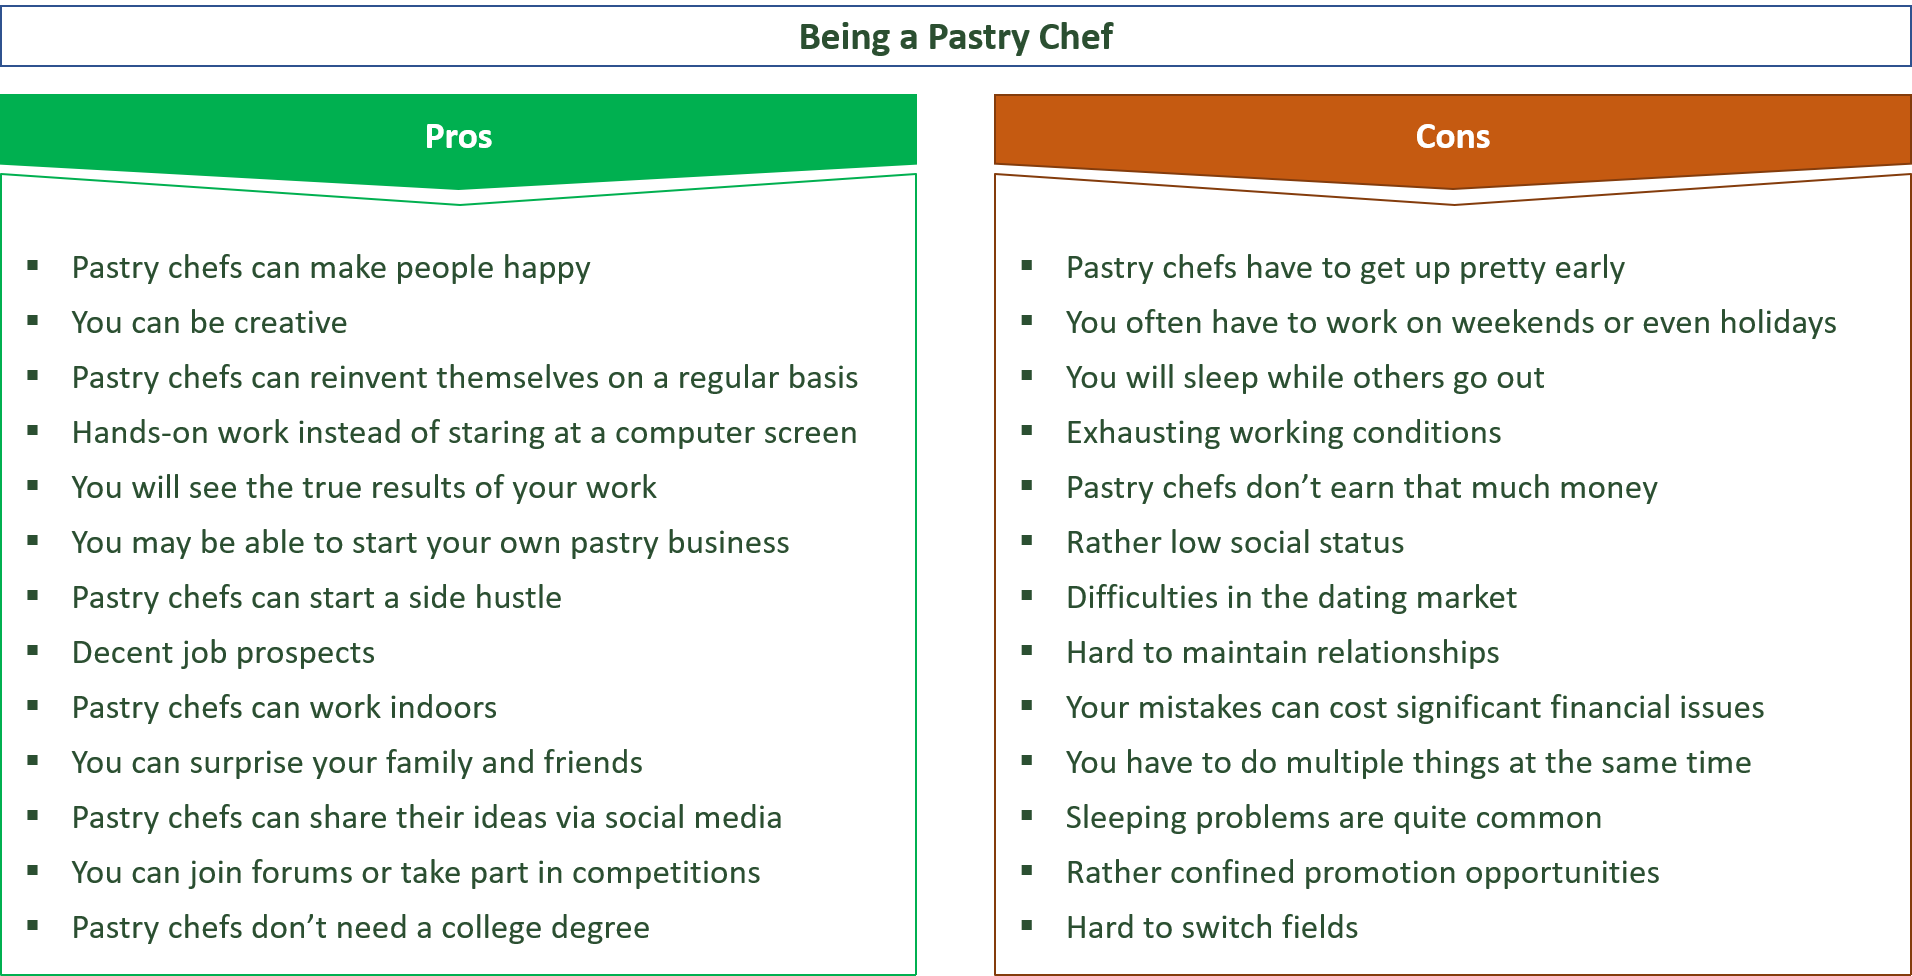 advantages and disadvantages of being a pastry chef